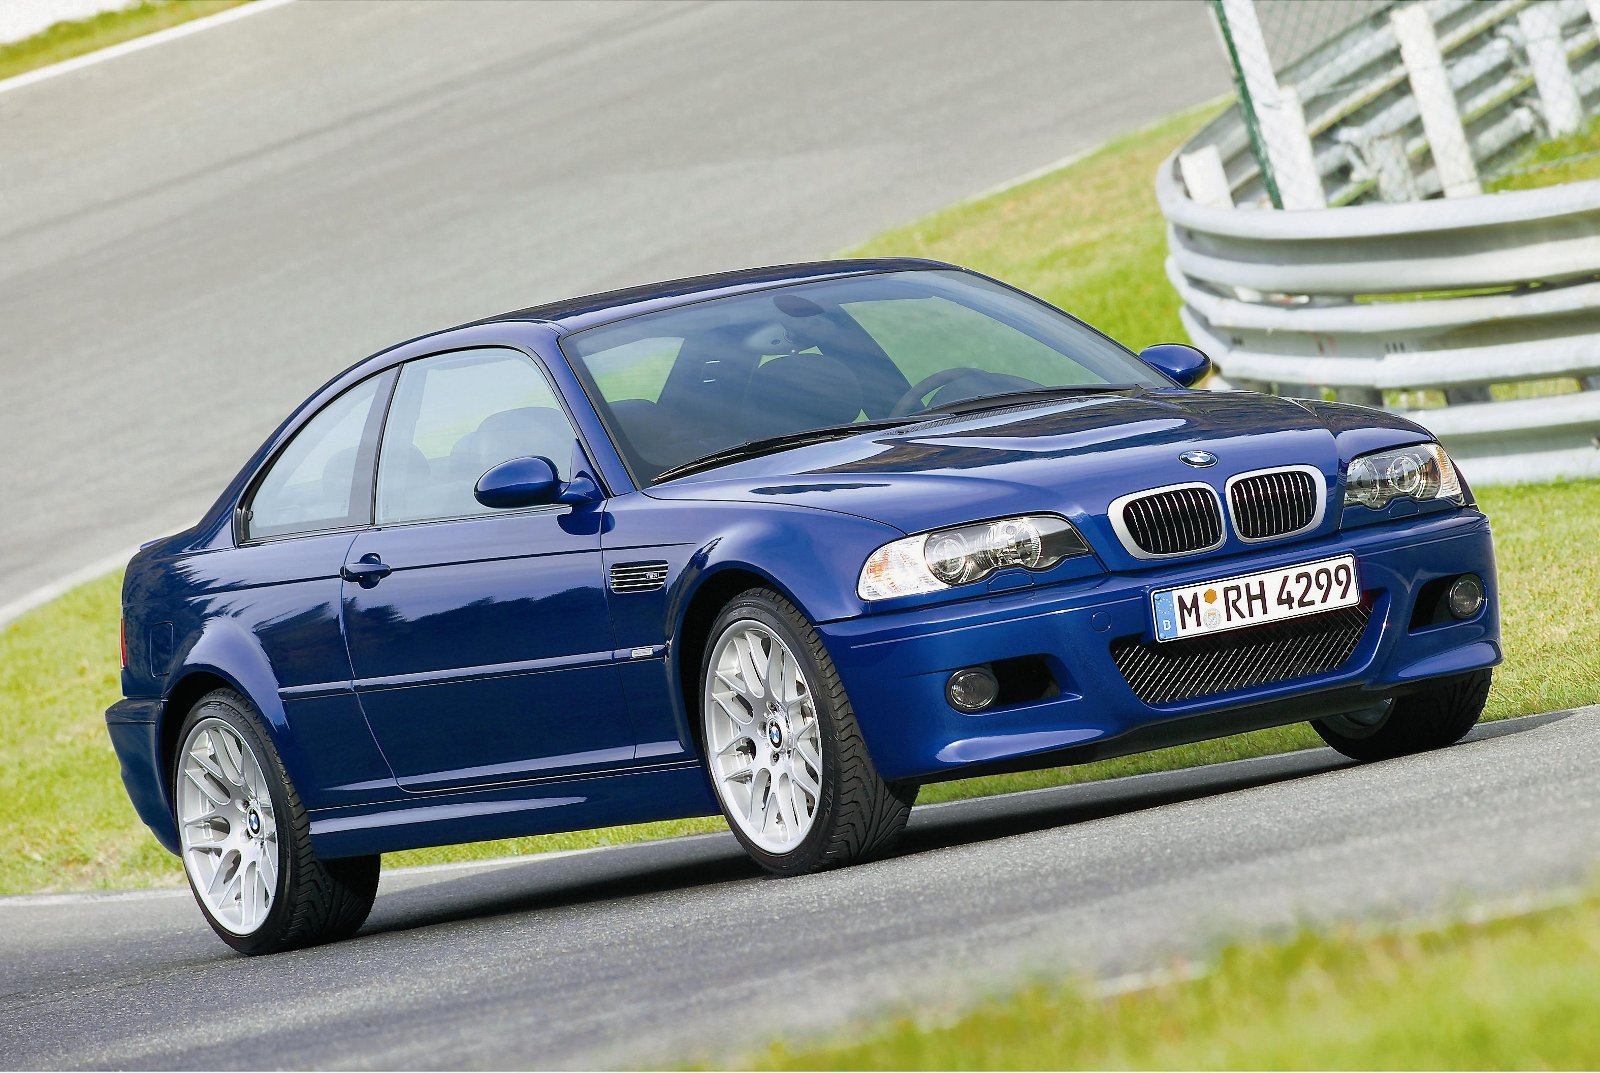 Bmw m3 coup e46 competition paket weitere fitnesskur for Garage auto 2000 wimille